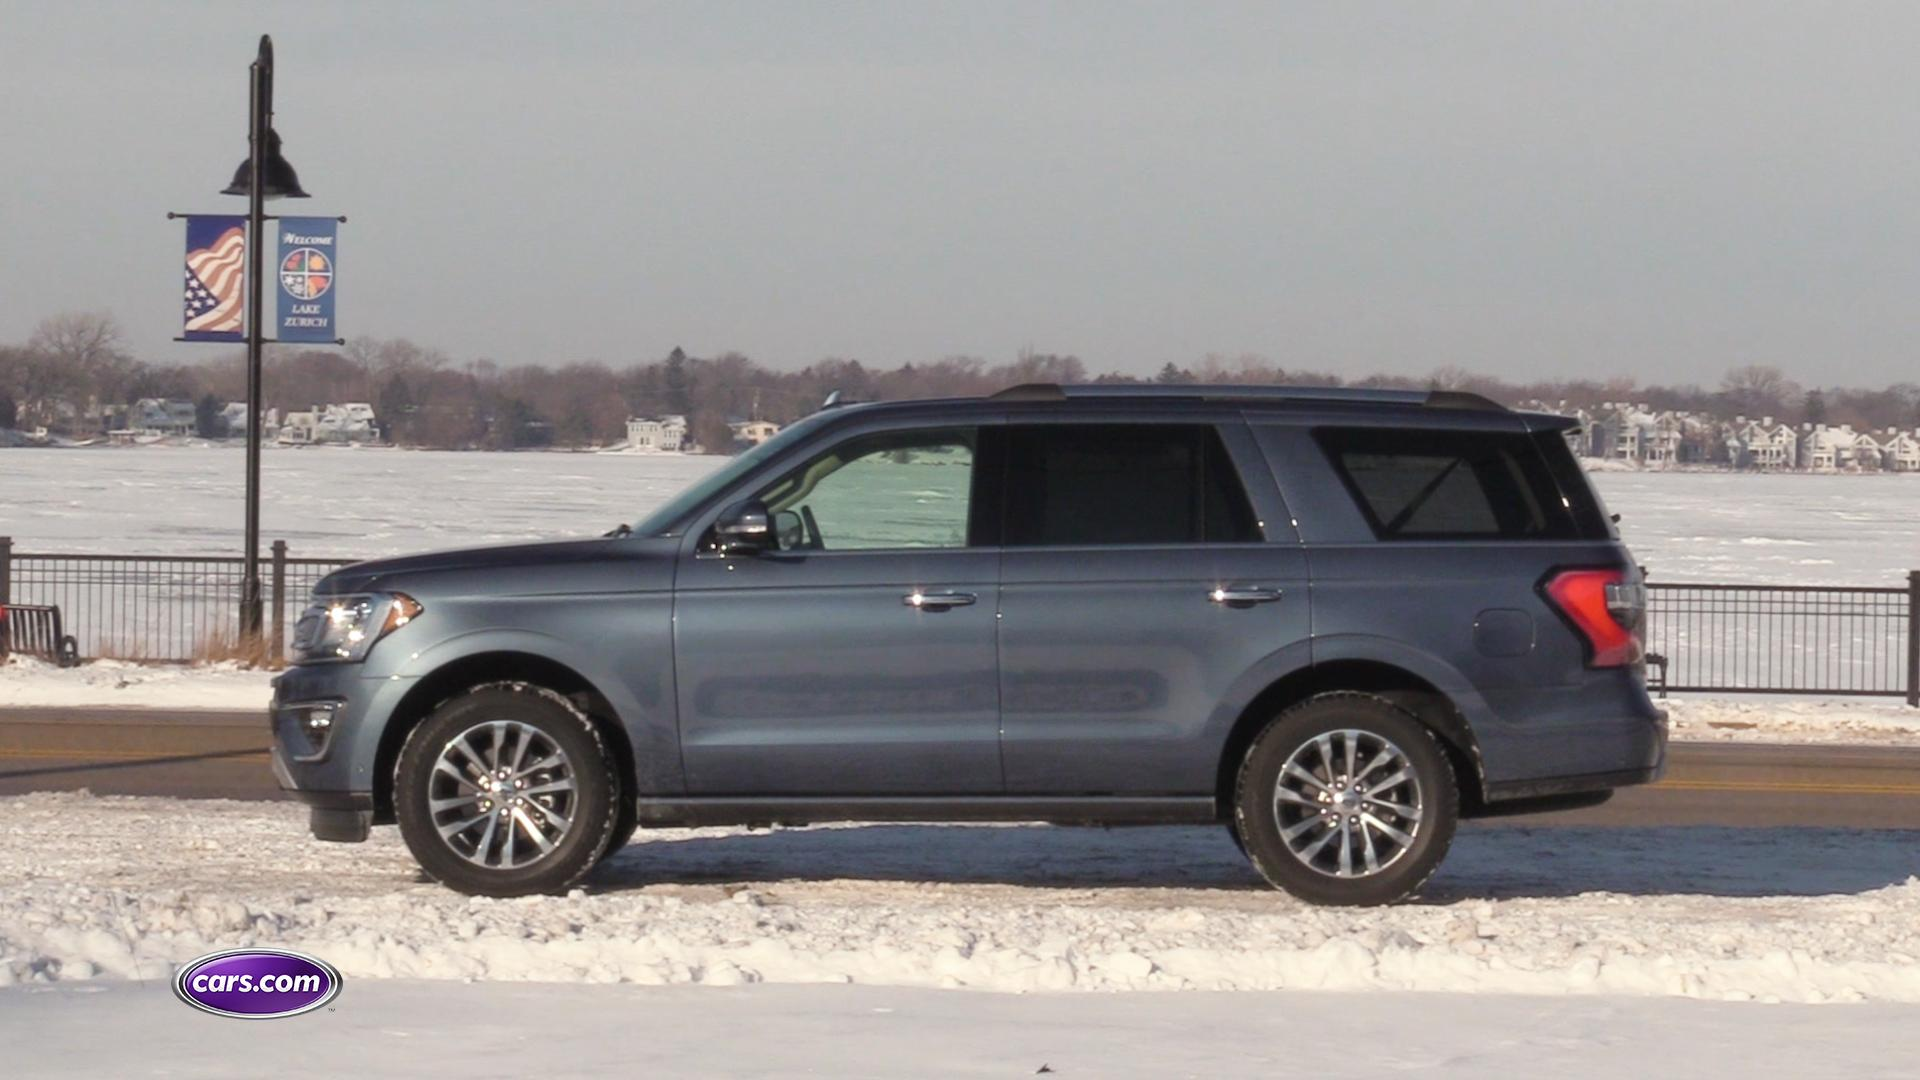 Video: 2018 Ford Expedition Review — Cars.com